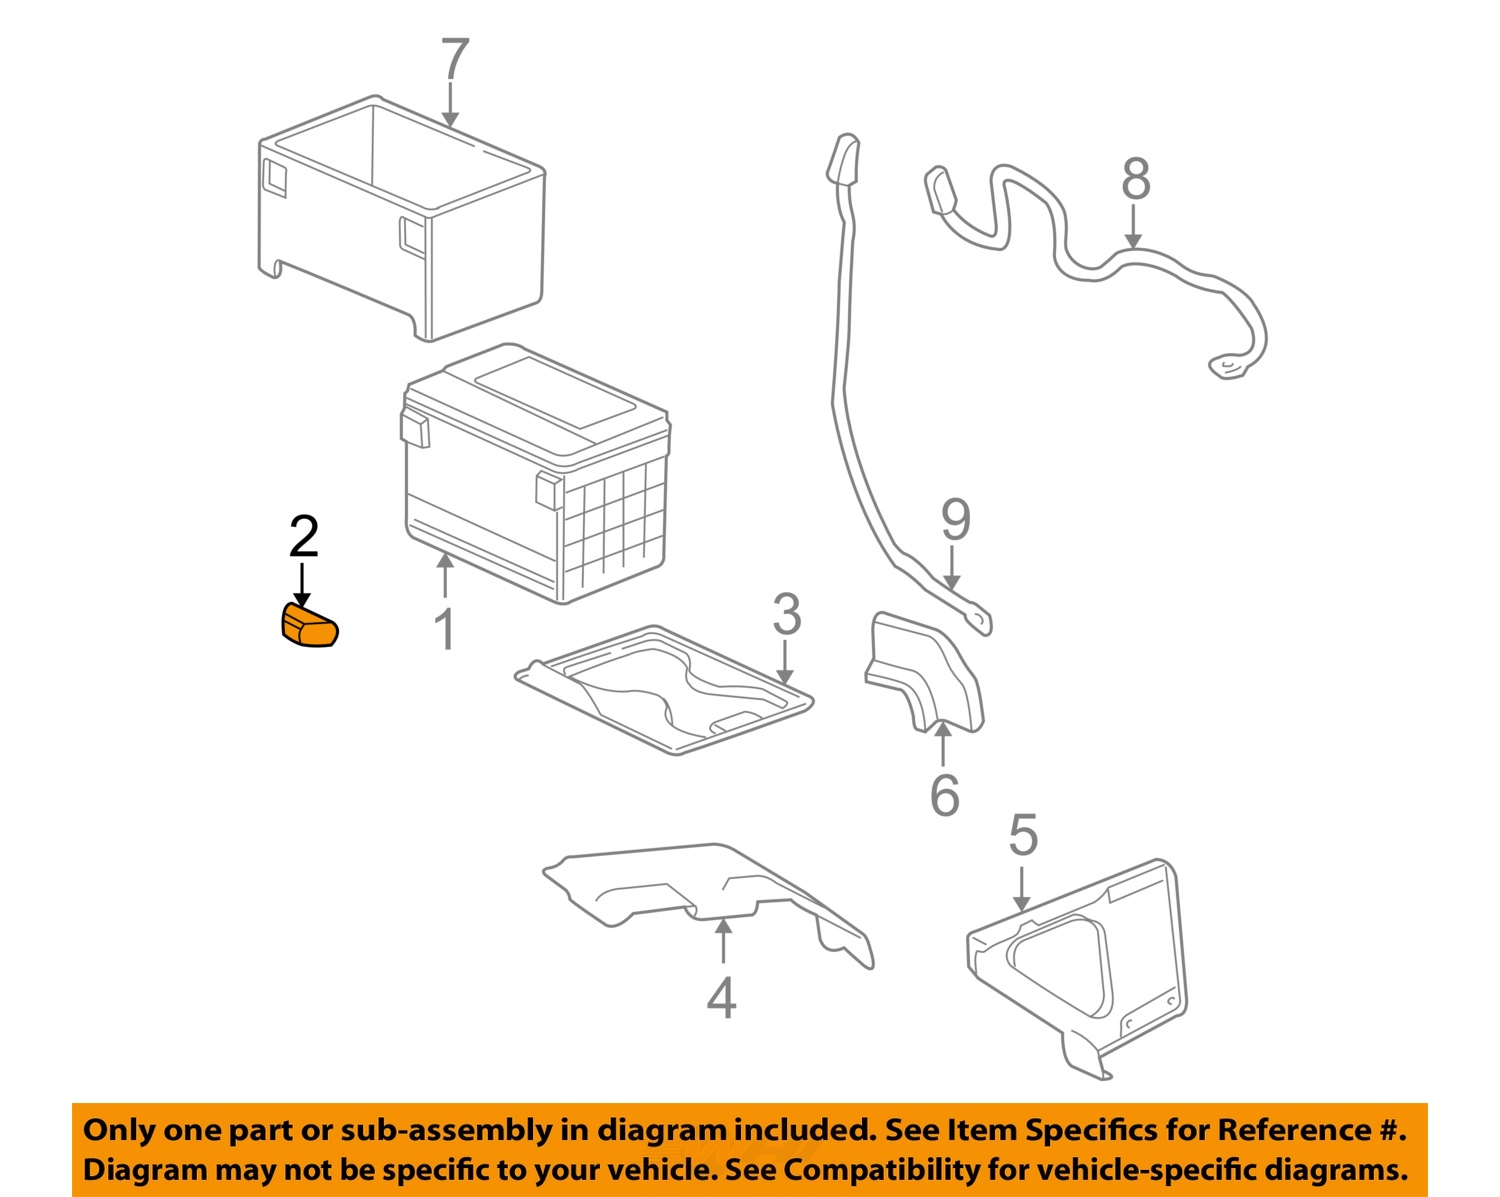 Gm Oem Battery Hold Down Tie Bracket Clamp 14005061 Ebay 2000 Gmc Savana Wiring Schematic 2 On Diagram Only Genuine Oe Factory Original Item